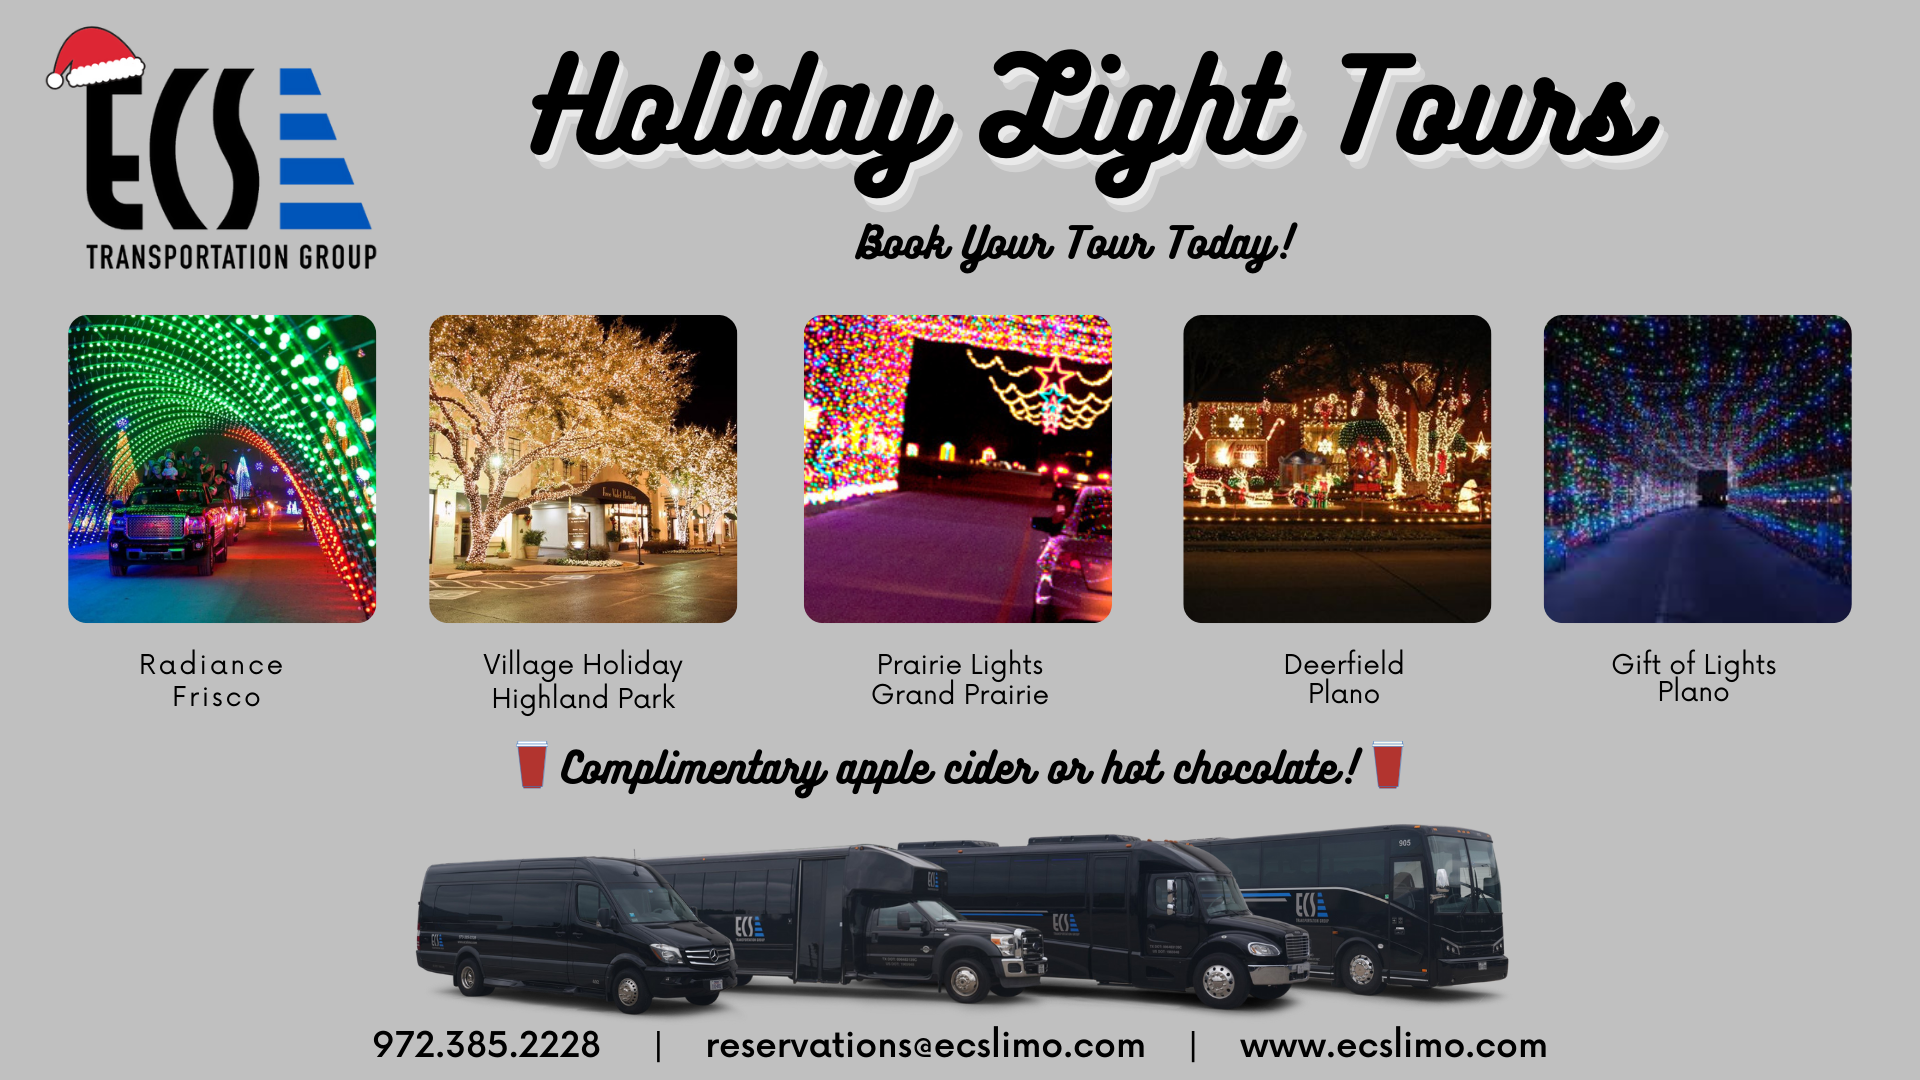 Dallas $99 Holiday Light Tour Specials!